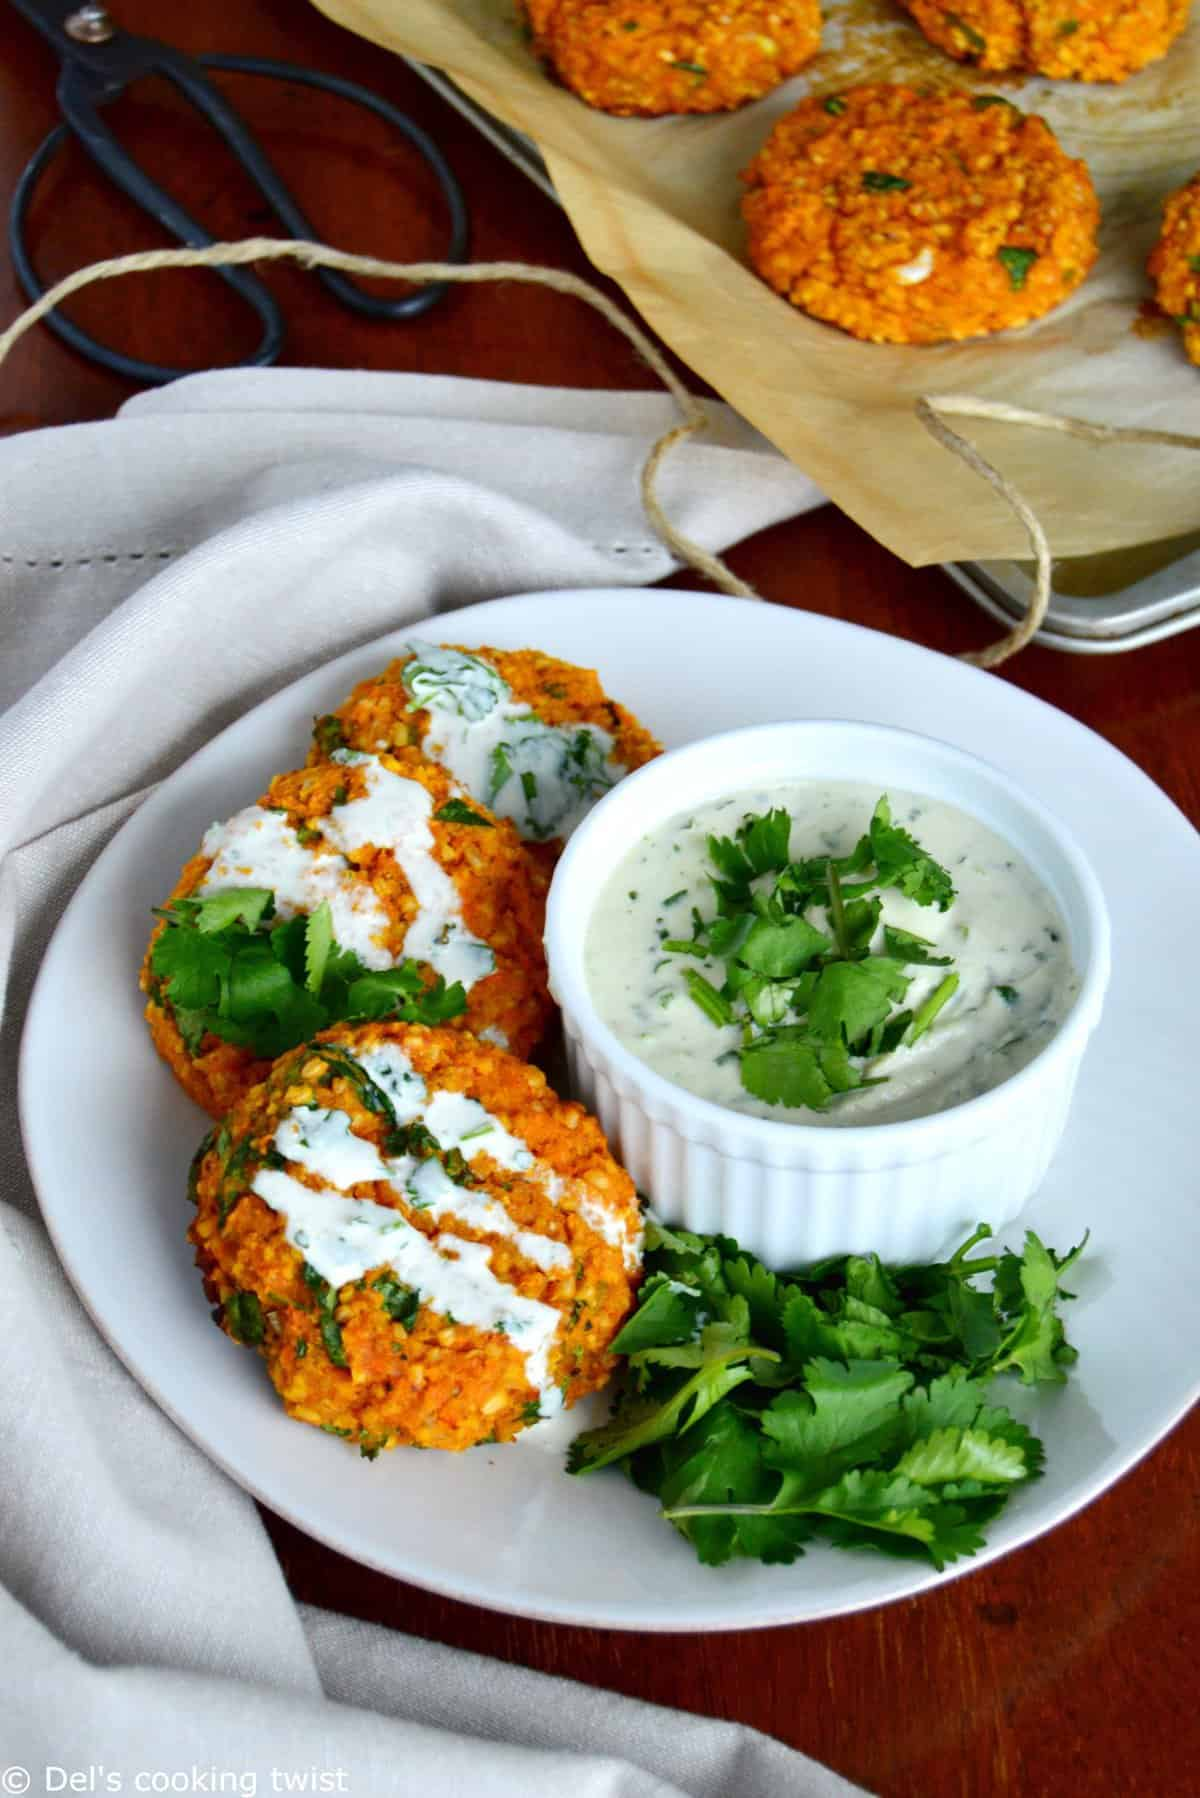 Red Lentil Patties with Garlic Herb Tahini Sauce